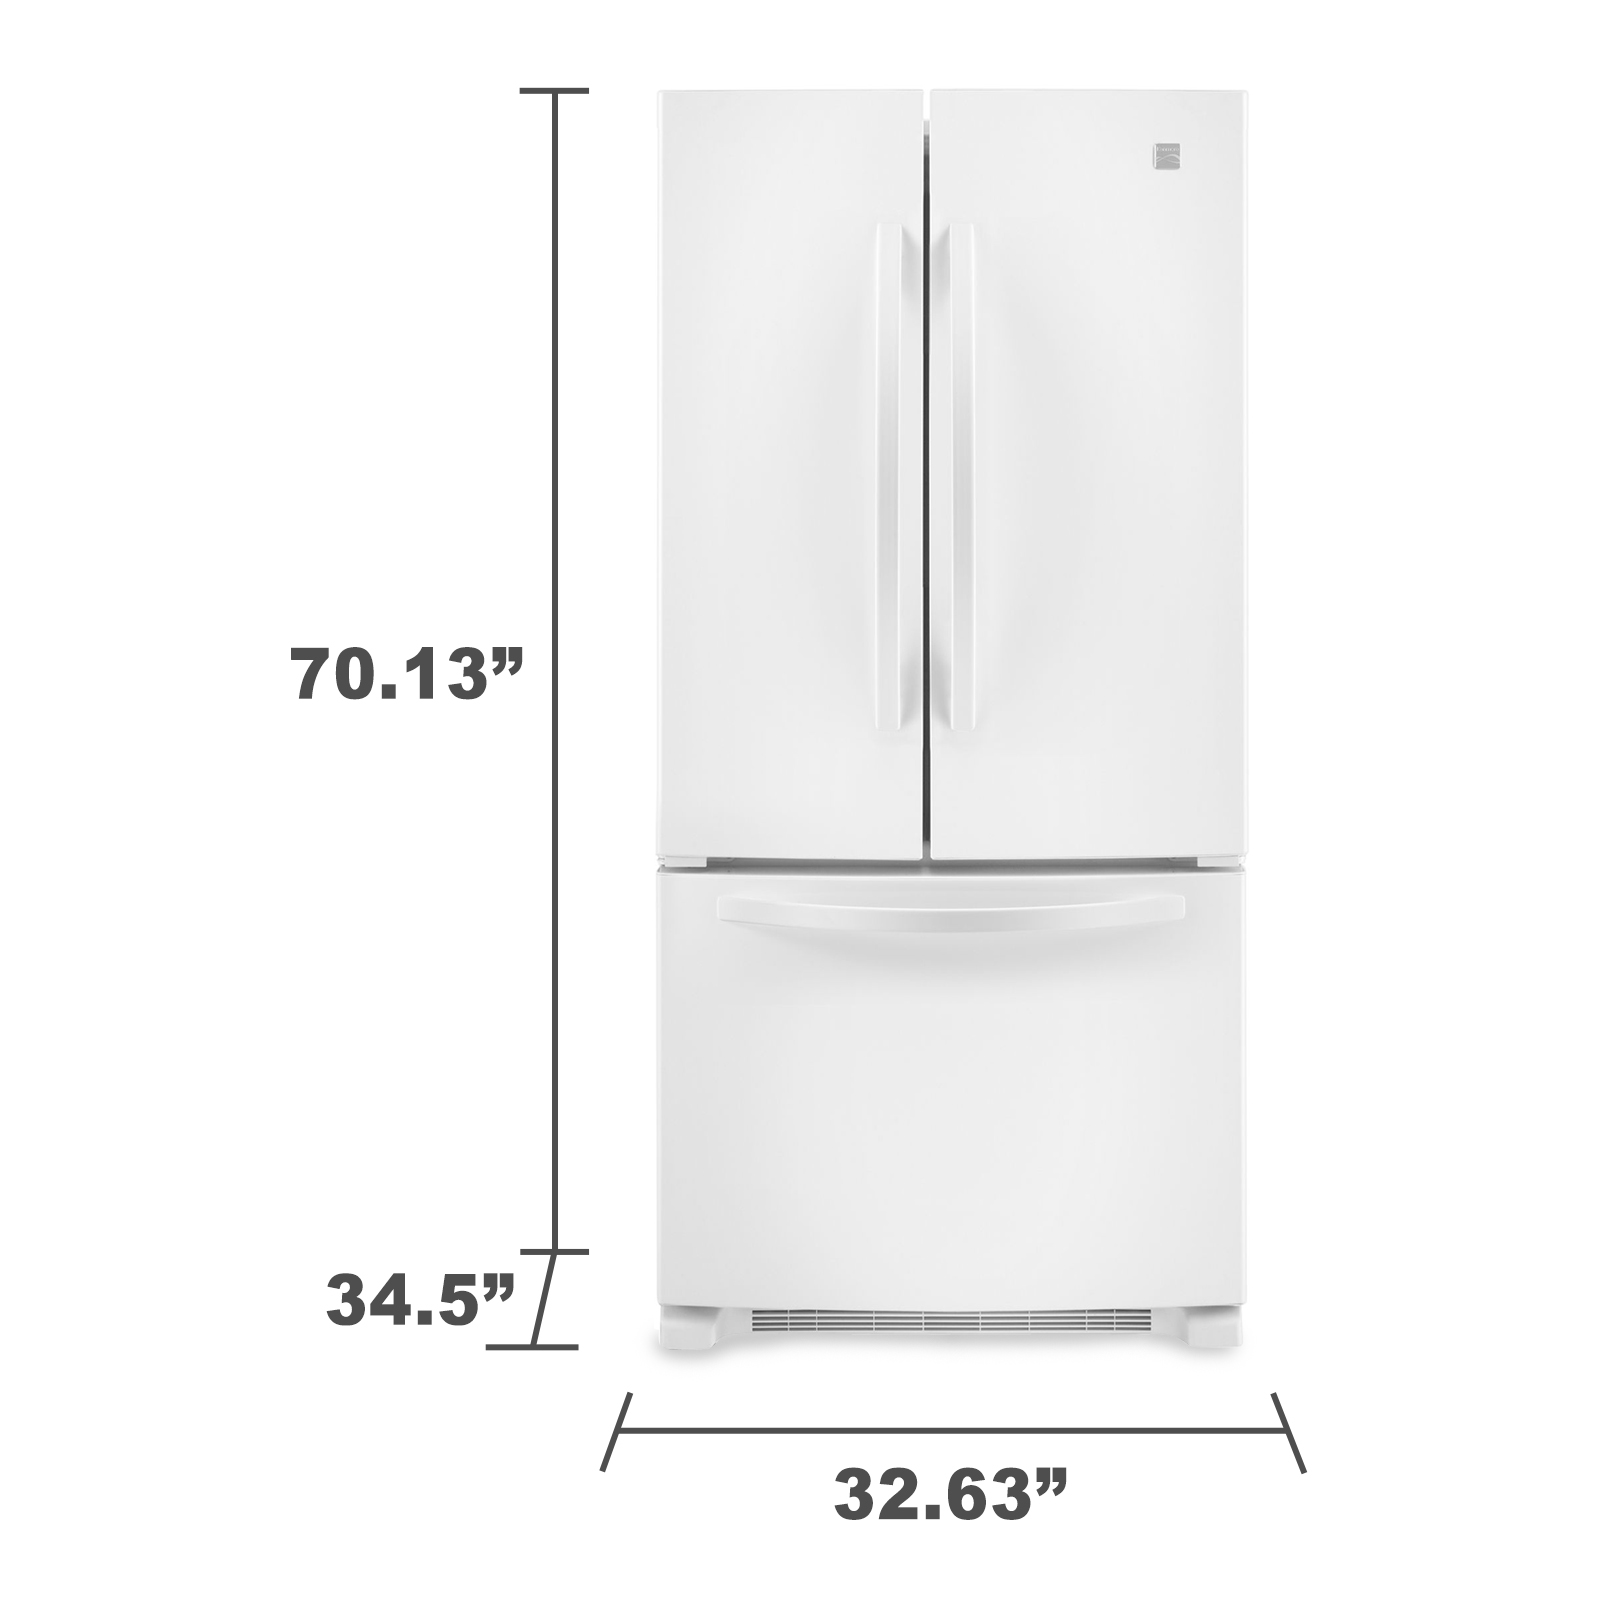 Kenmore 72002 22 cu. ft. French-Door Bottom-Freezer Refrigerator w/Internal Dispenser - White